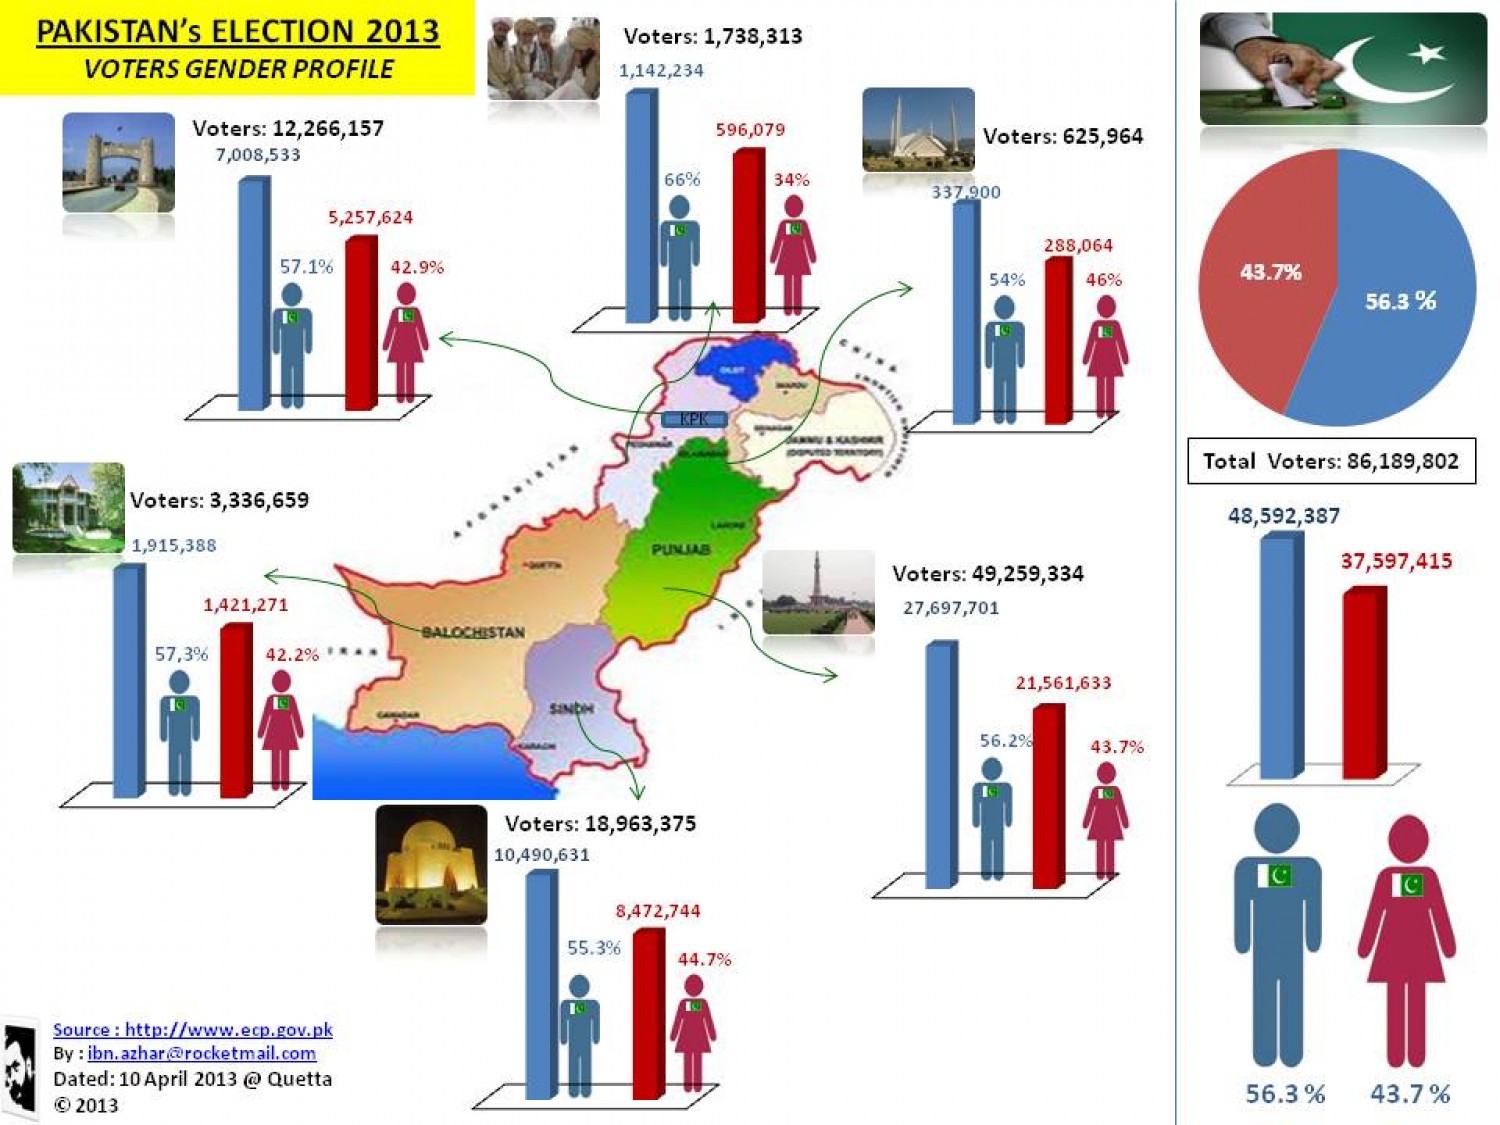 Pakistan's Election 2013-Gender profile Infographic